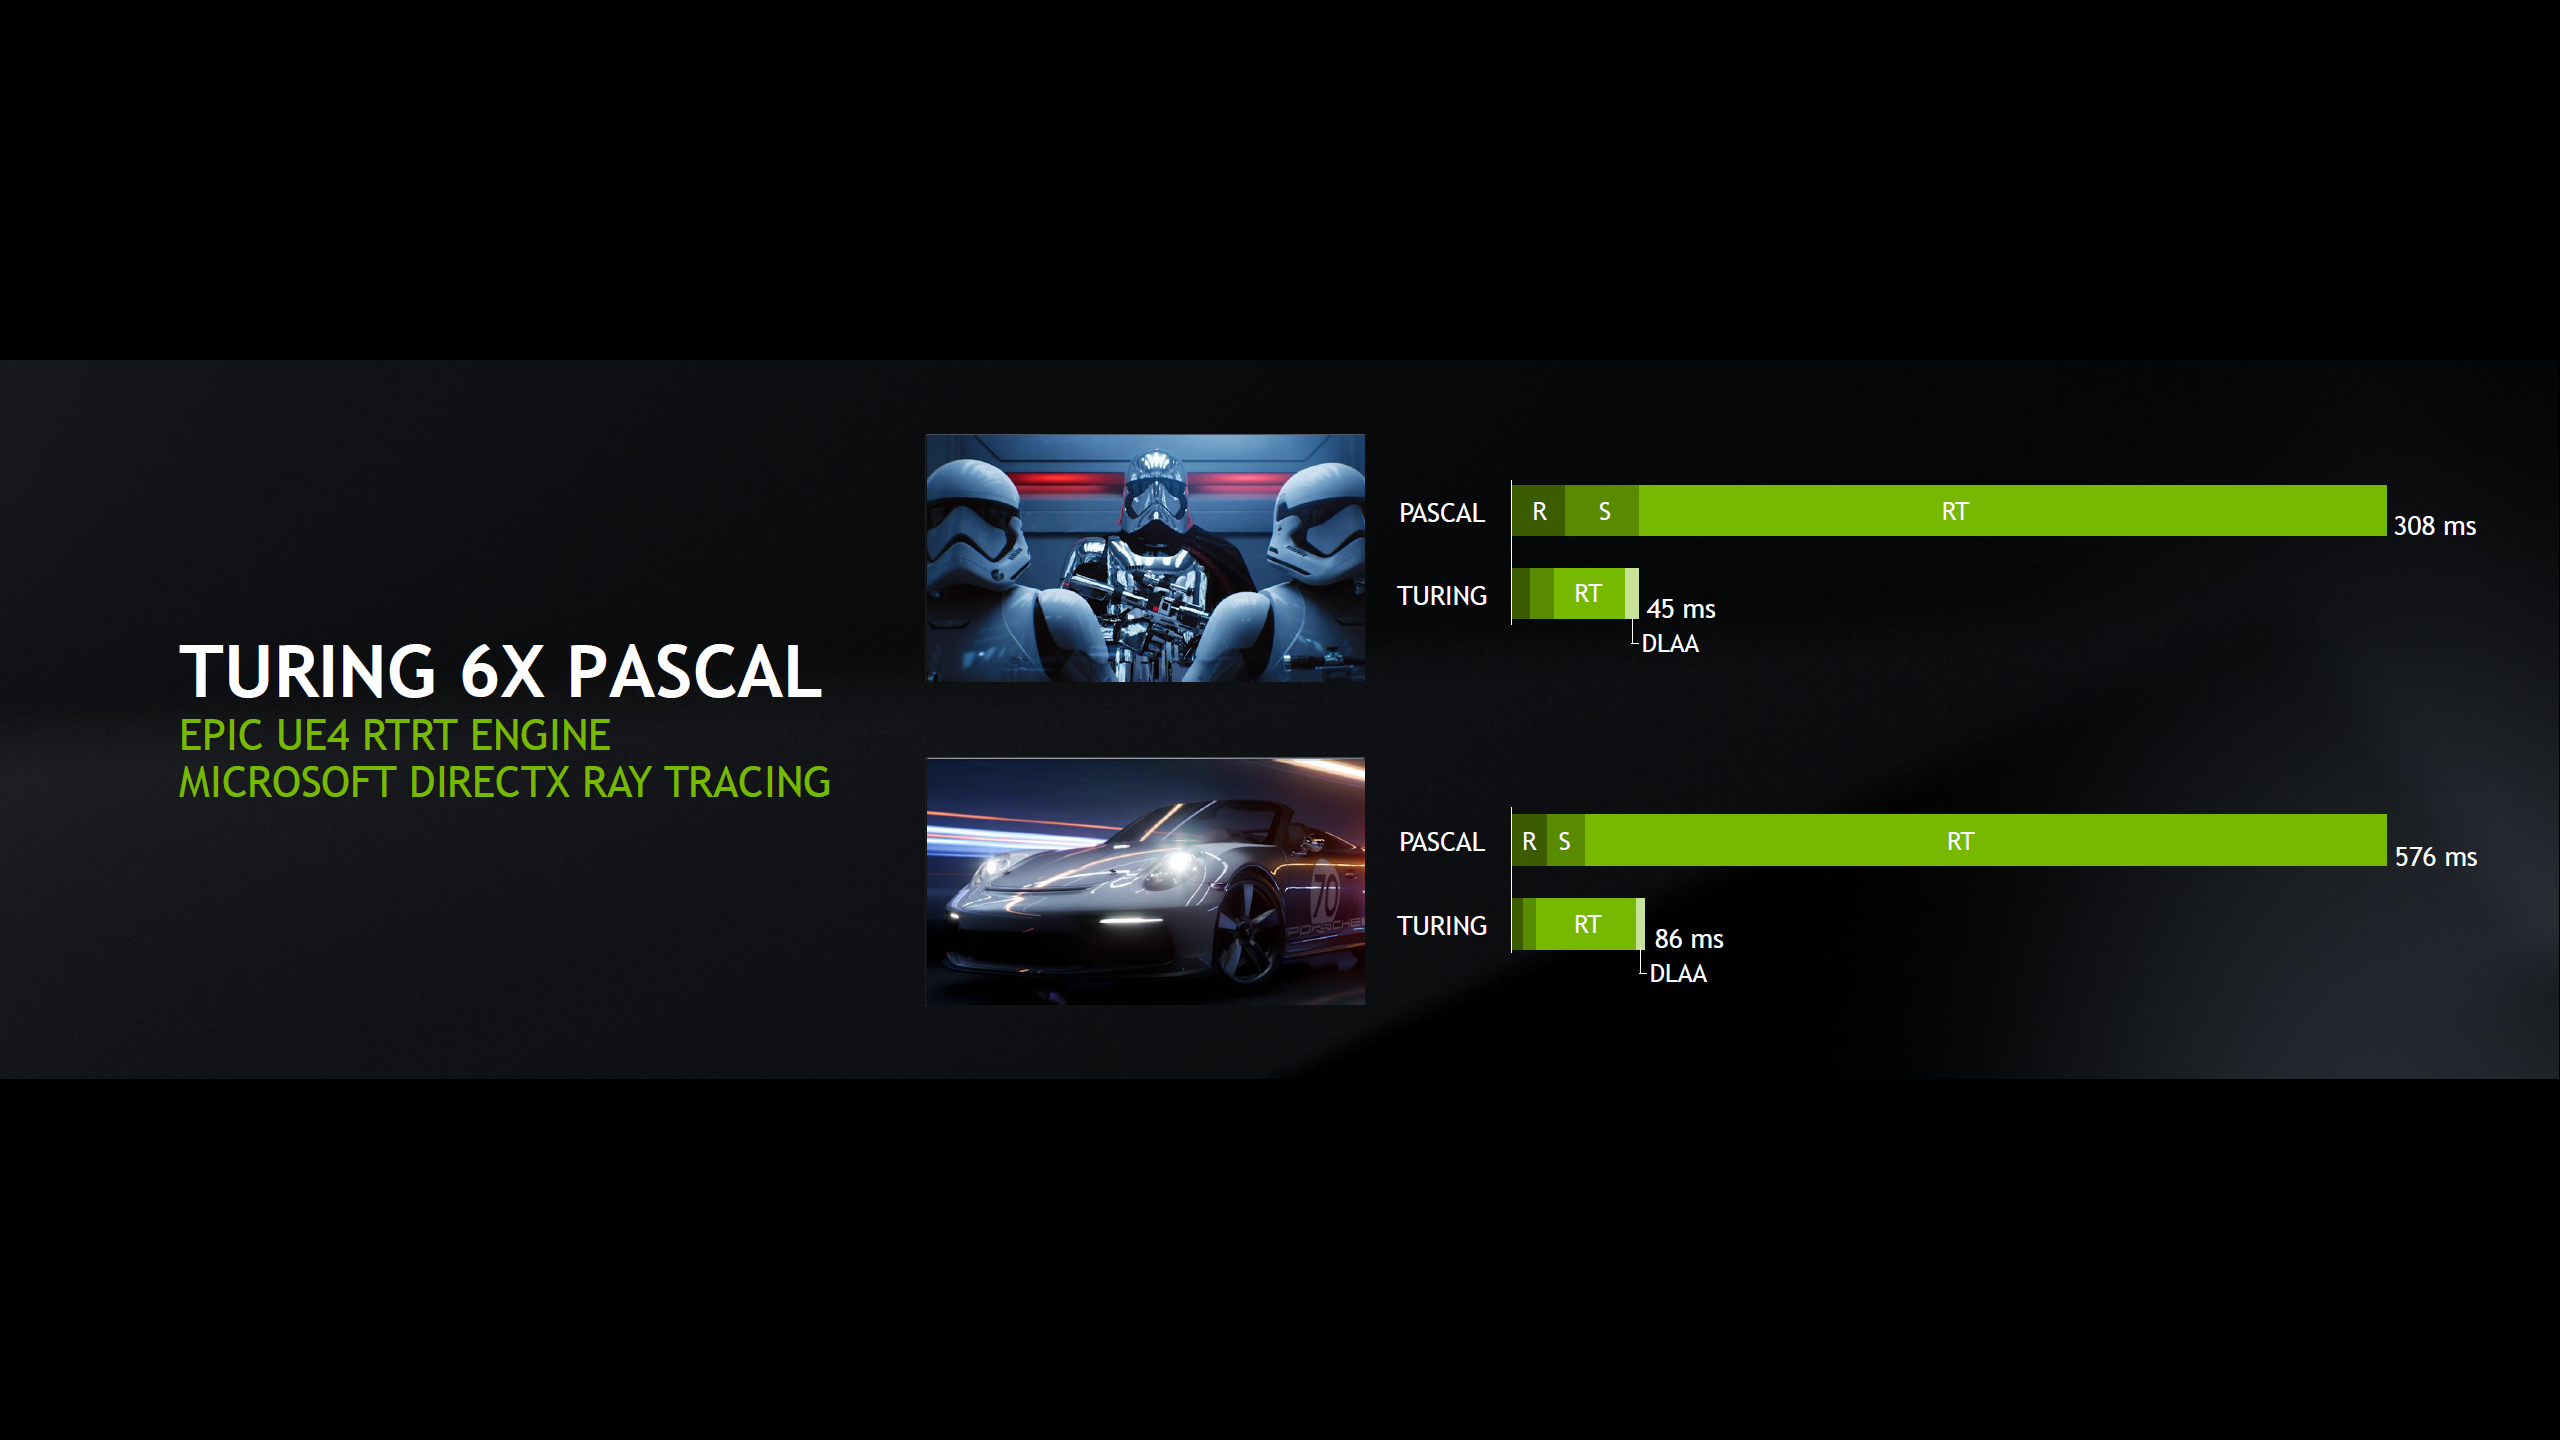 NVIDIA RTX 2080 Ti, 2080 & 2070 Gaming Performance - 50% Faster vs